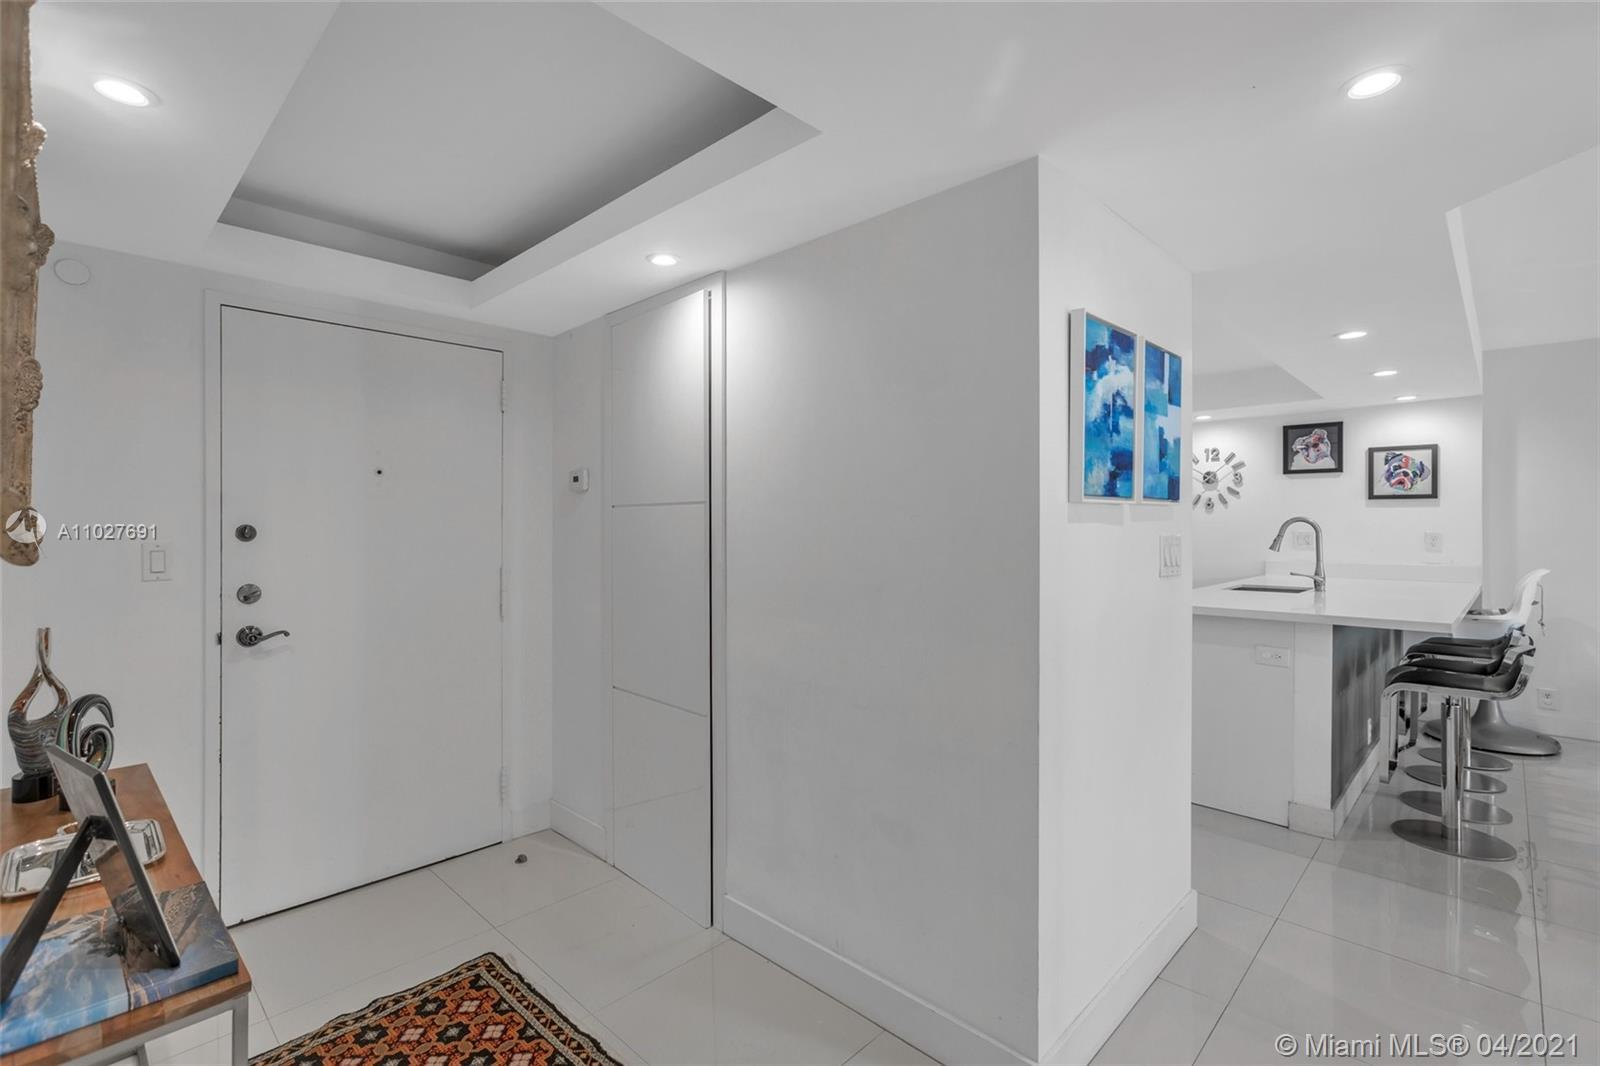 Fully-renovated move-in ready 2 bedroom + 2 bathroom apartment in coveted Brickell Place B Tower. Th